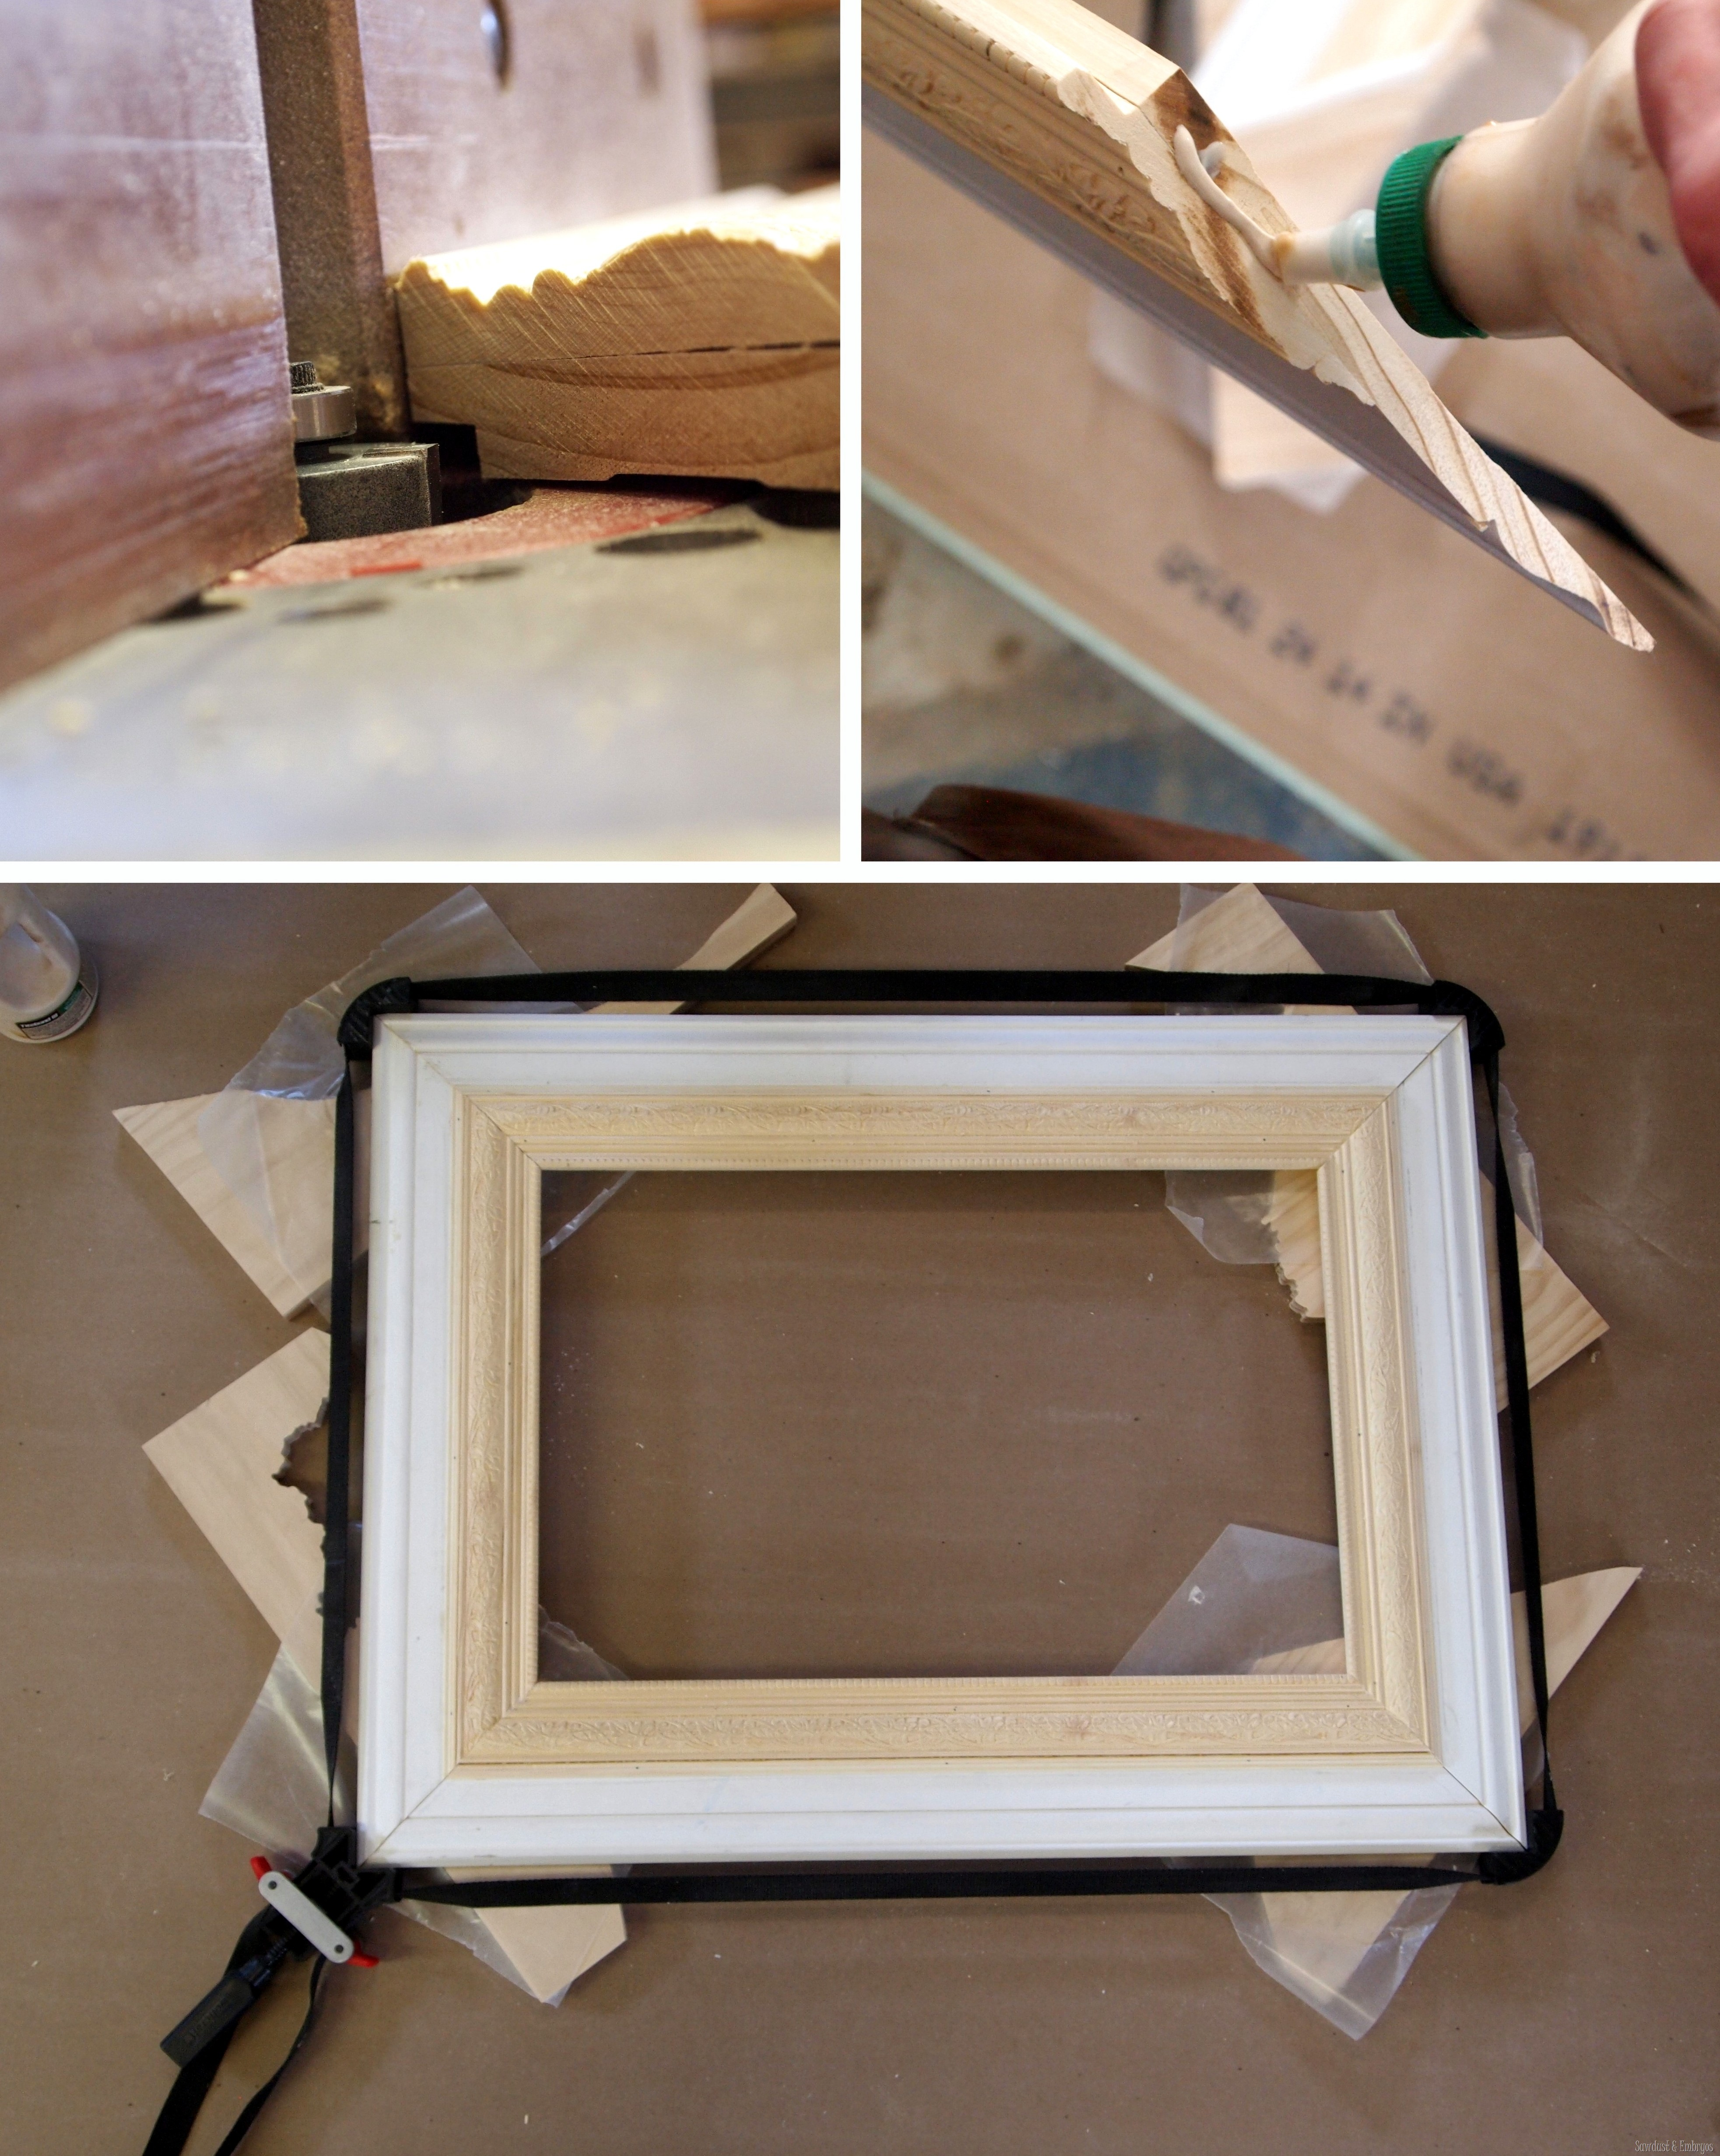 make your own giant picture frame using trim pieces sawdust and embryos